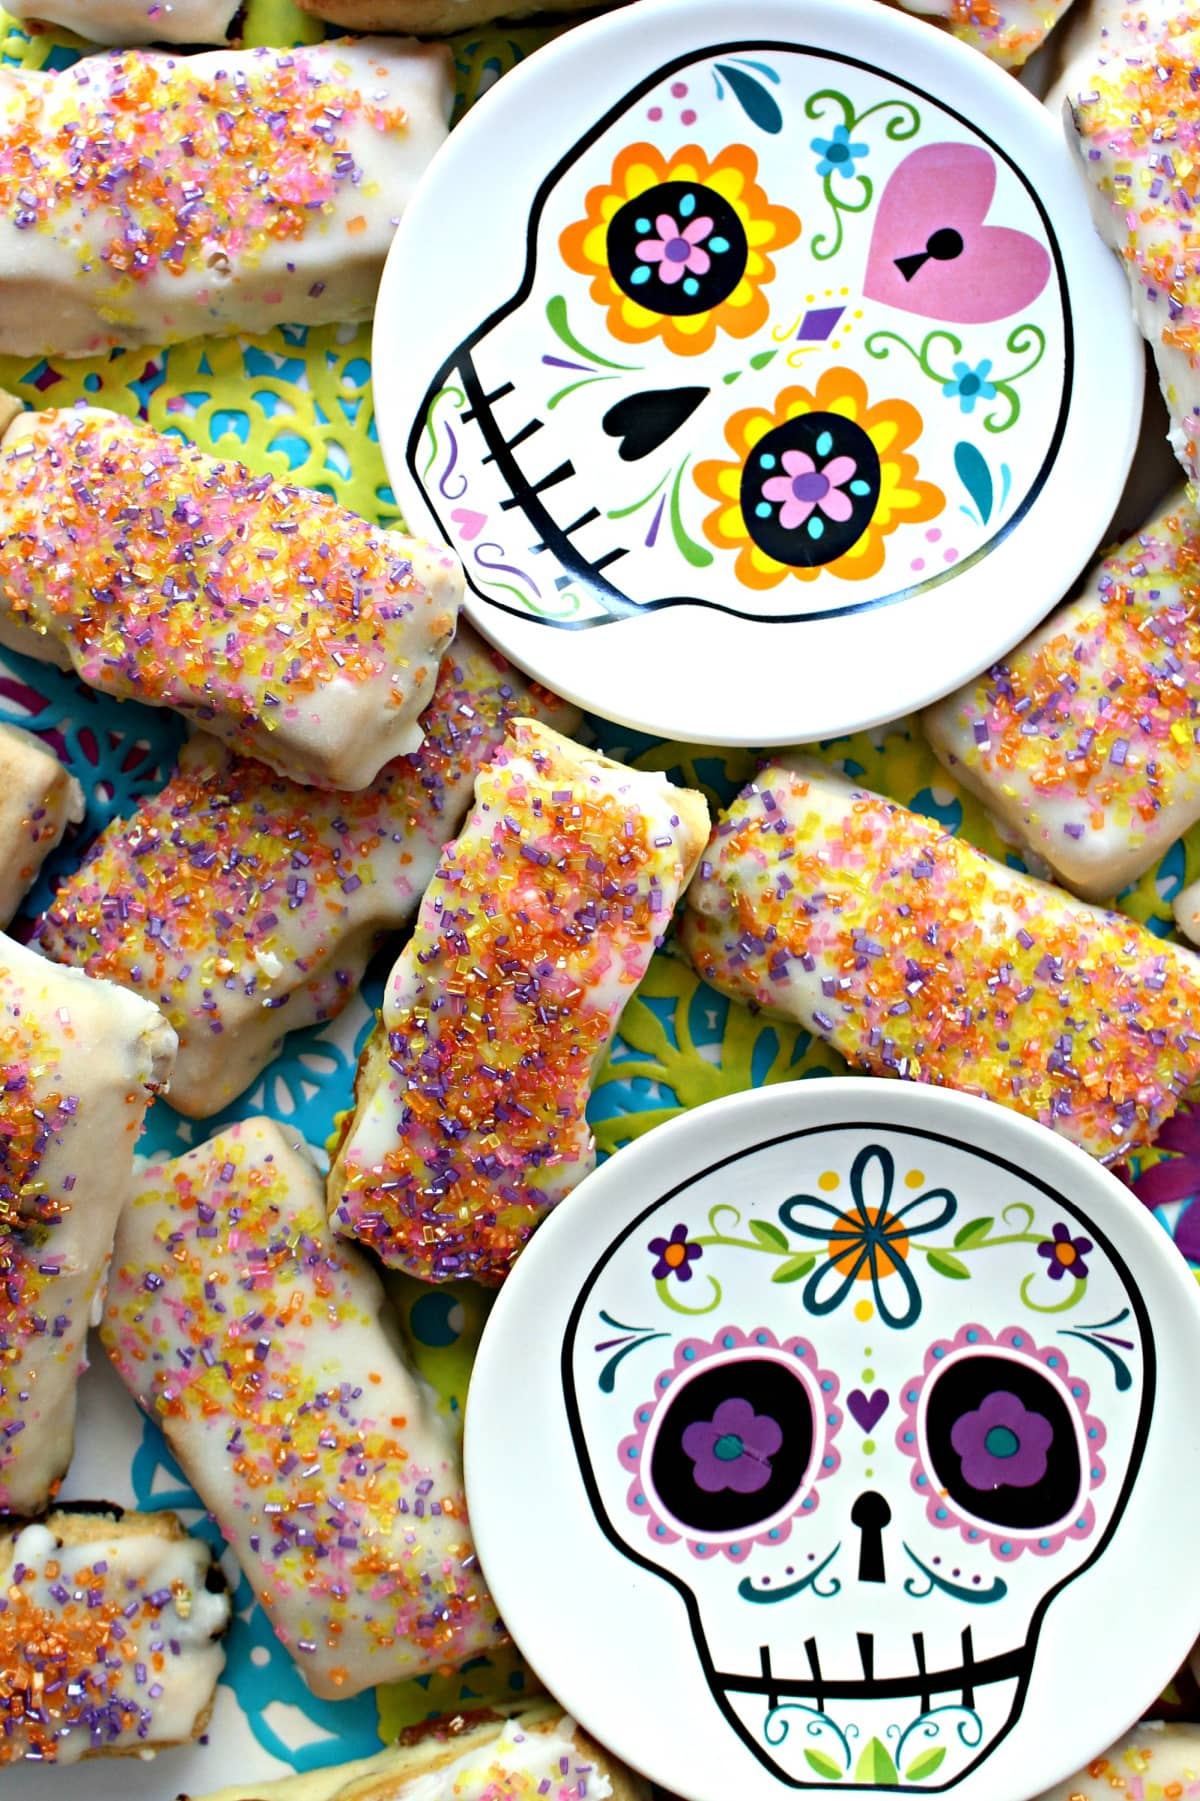 Iced raisin-nut bar cookies with colored sugar sprinkles.